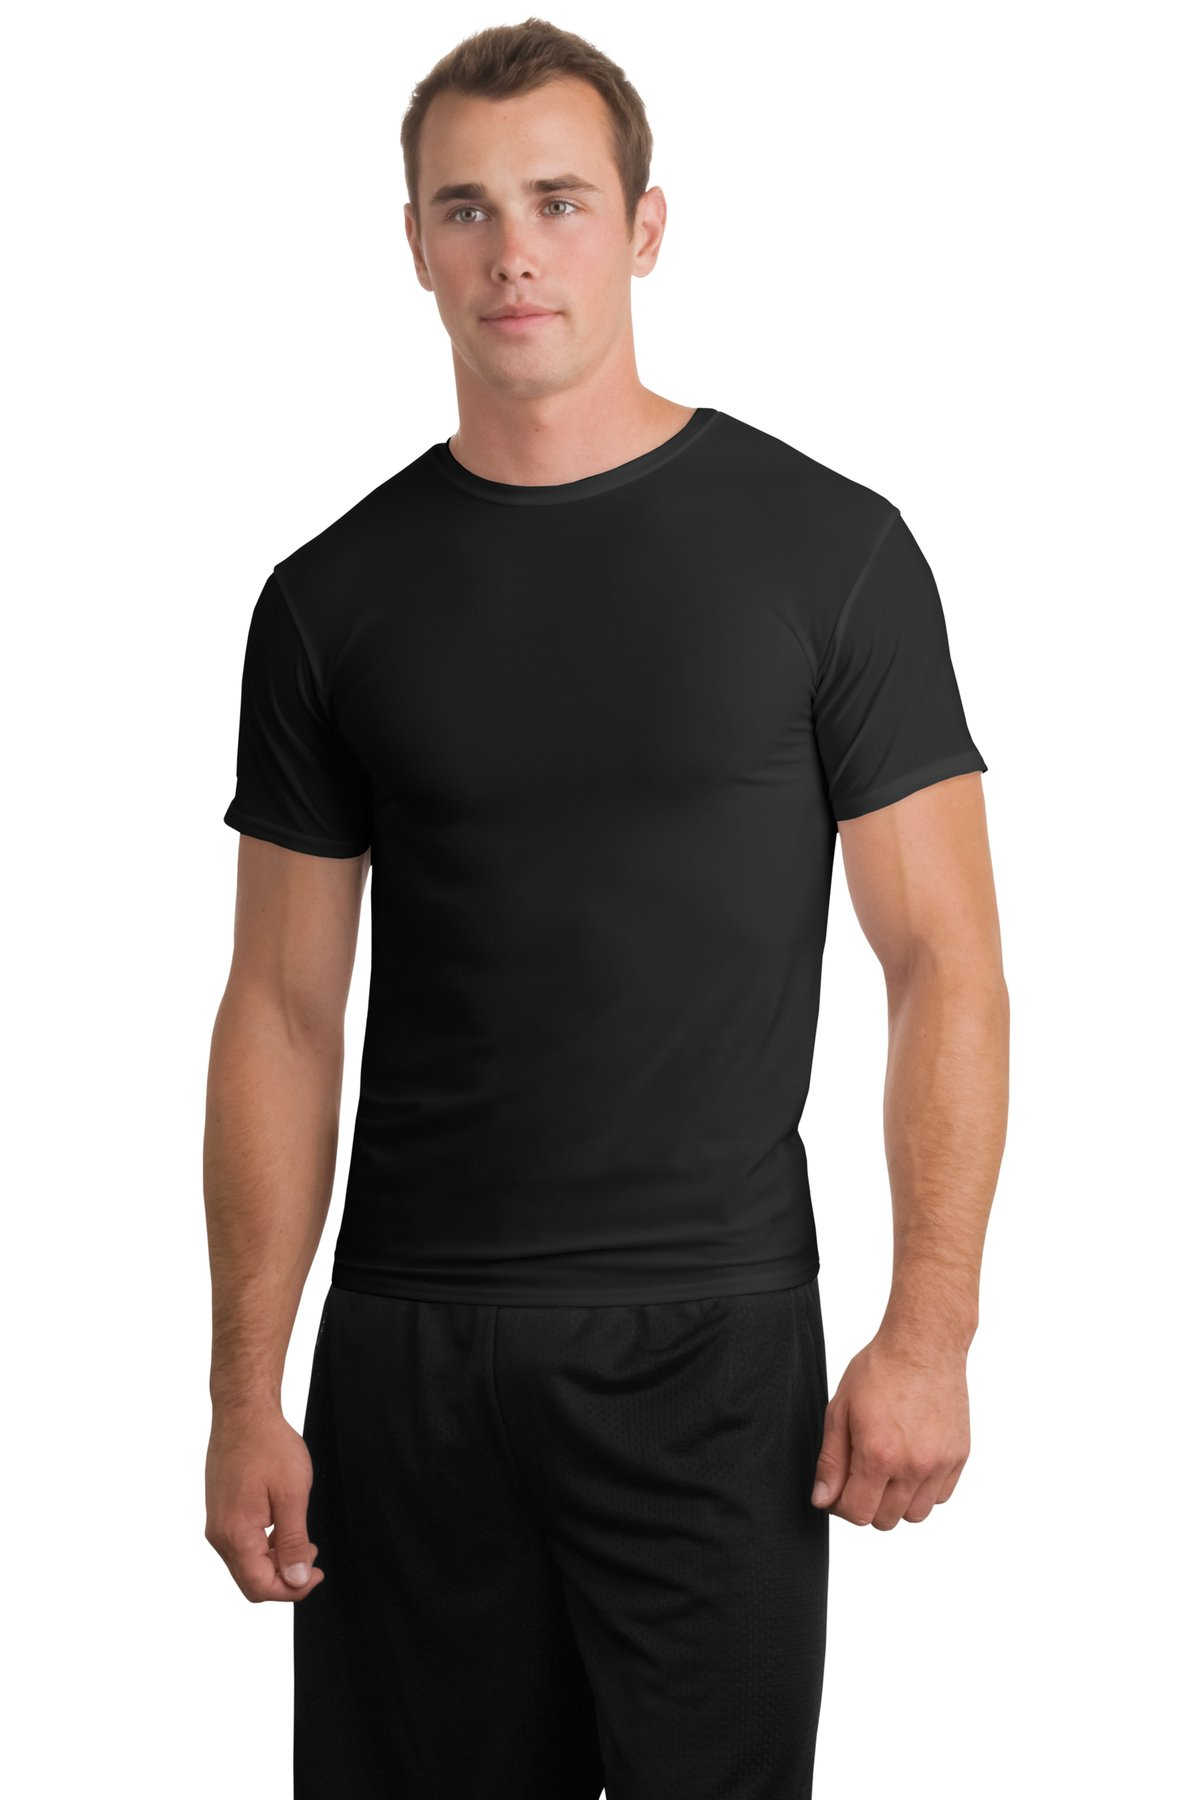 black t shirt model back - photo #4